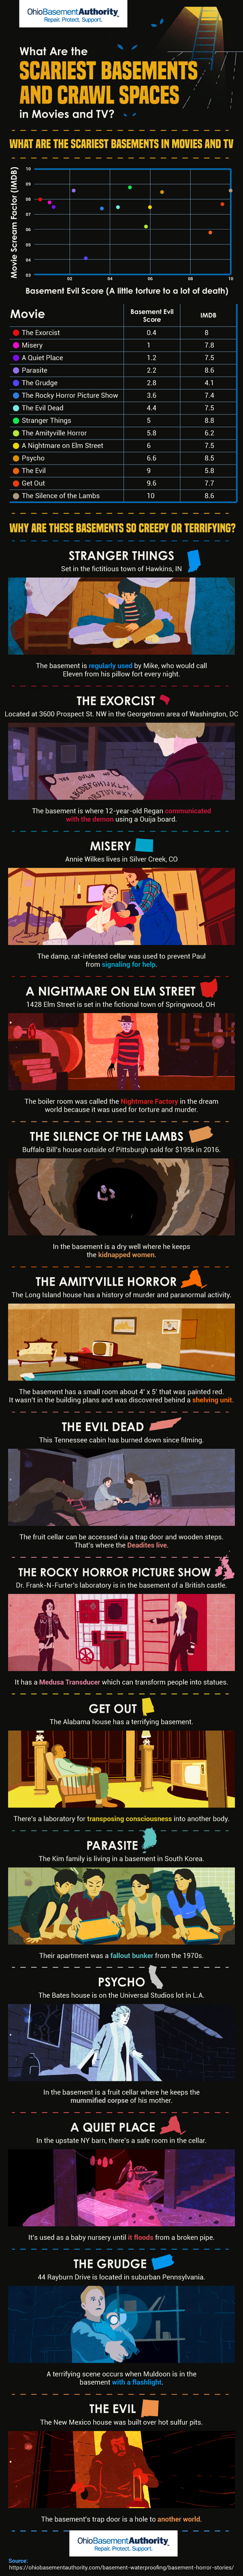 Scariest Basements and Crawl Spaces in Movies & TV